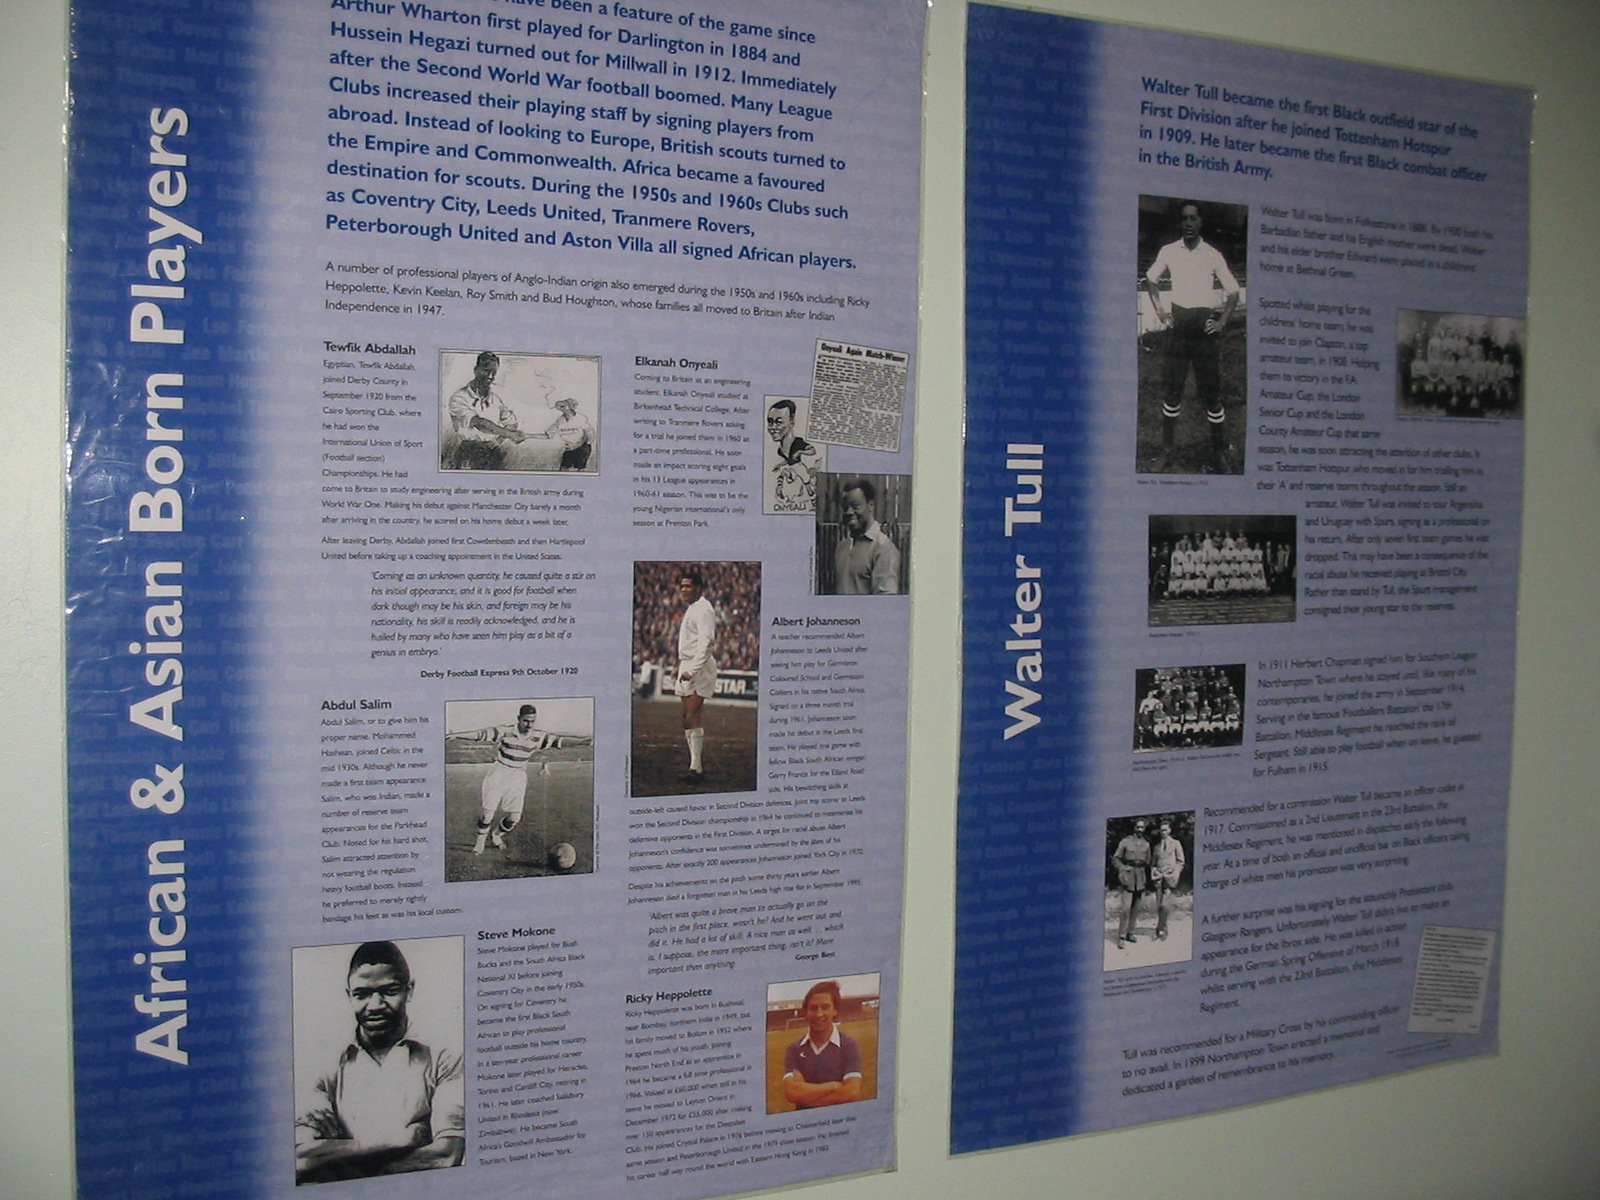 History of Black Footballers exhibition panels - 2 panels from the History of Black Footballers exhibition